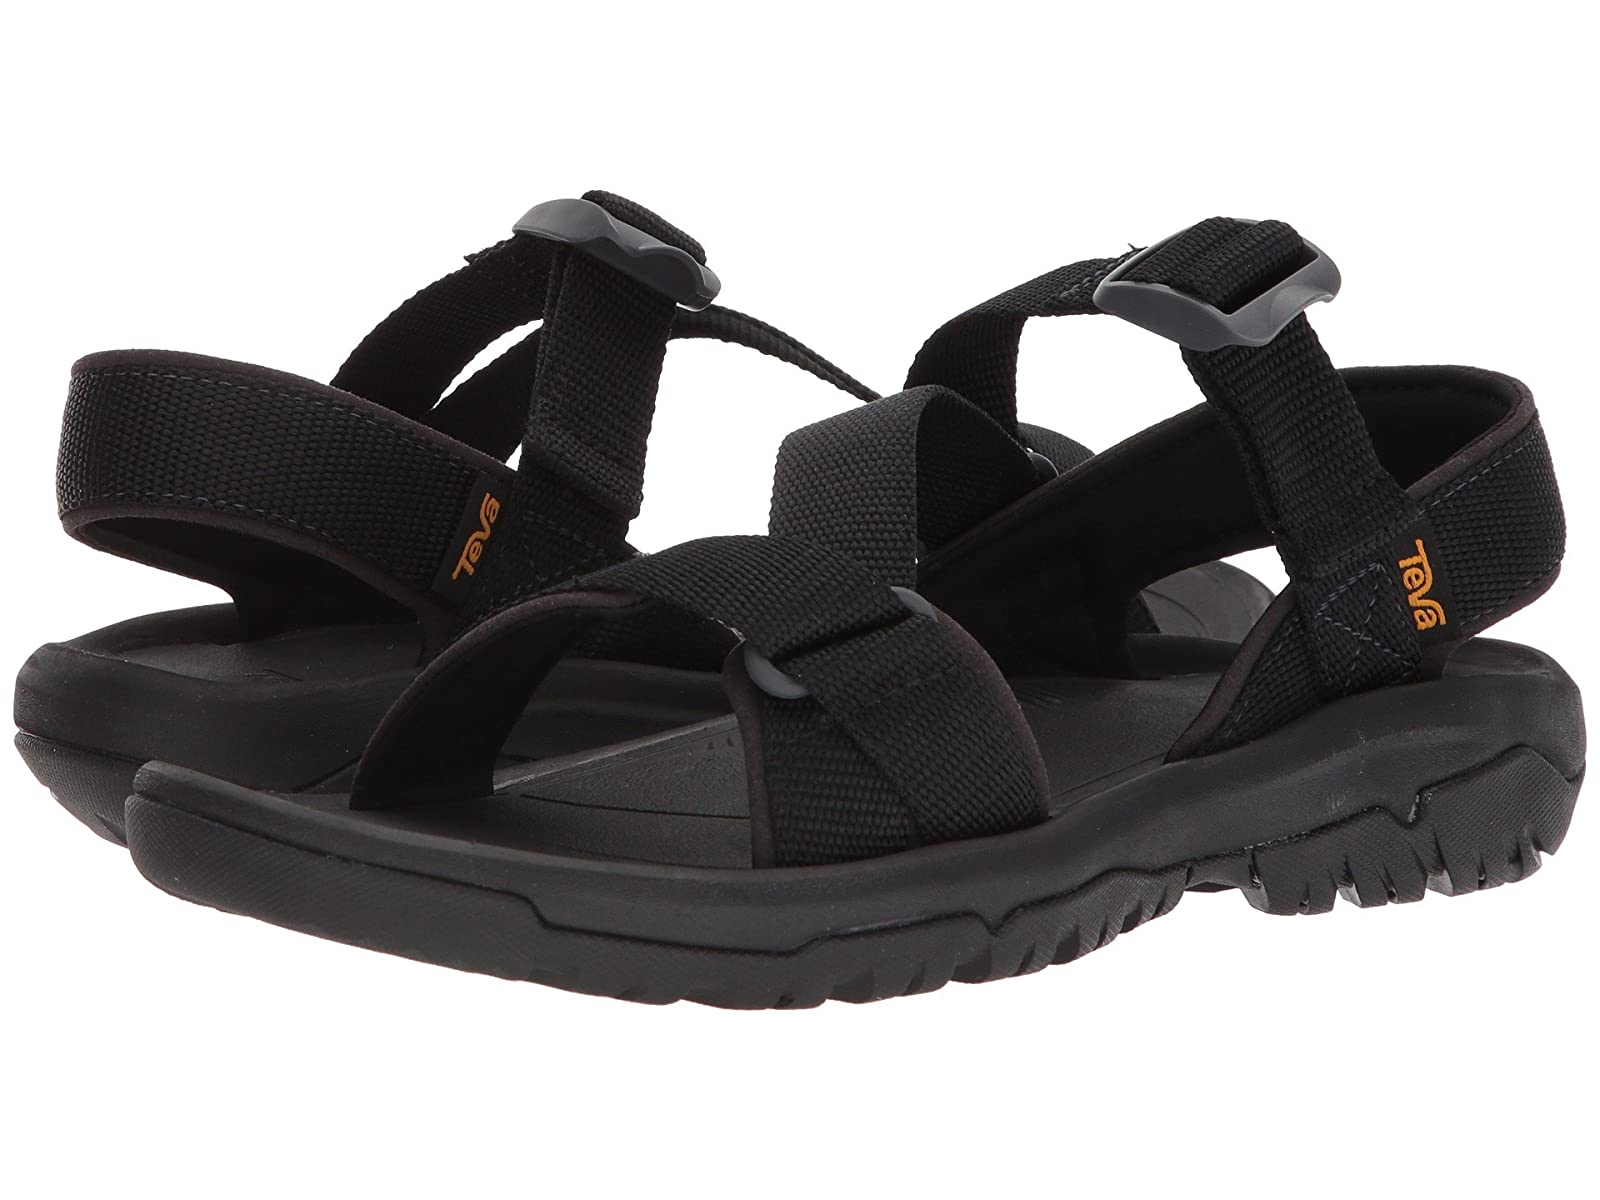 Teva Hurricane XLT2 Cross StrapAtmospheric grades have affordable shoes